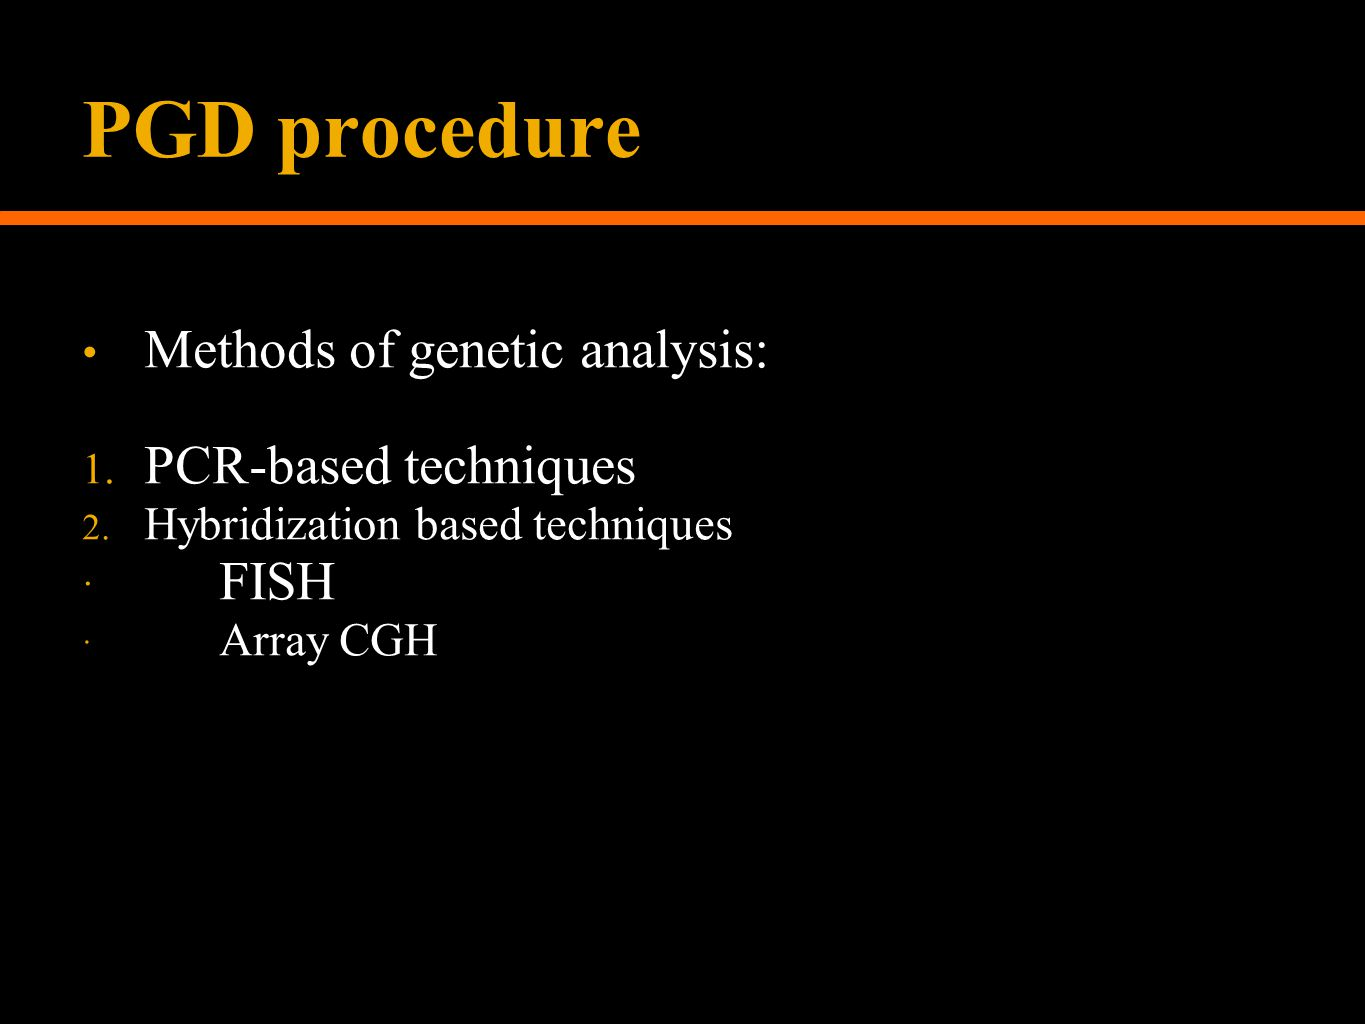 PGD procedure Methods of genetic analysis: PCR-based techniques FISH